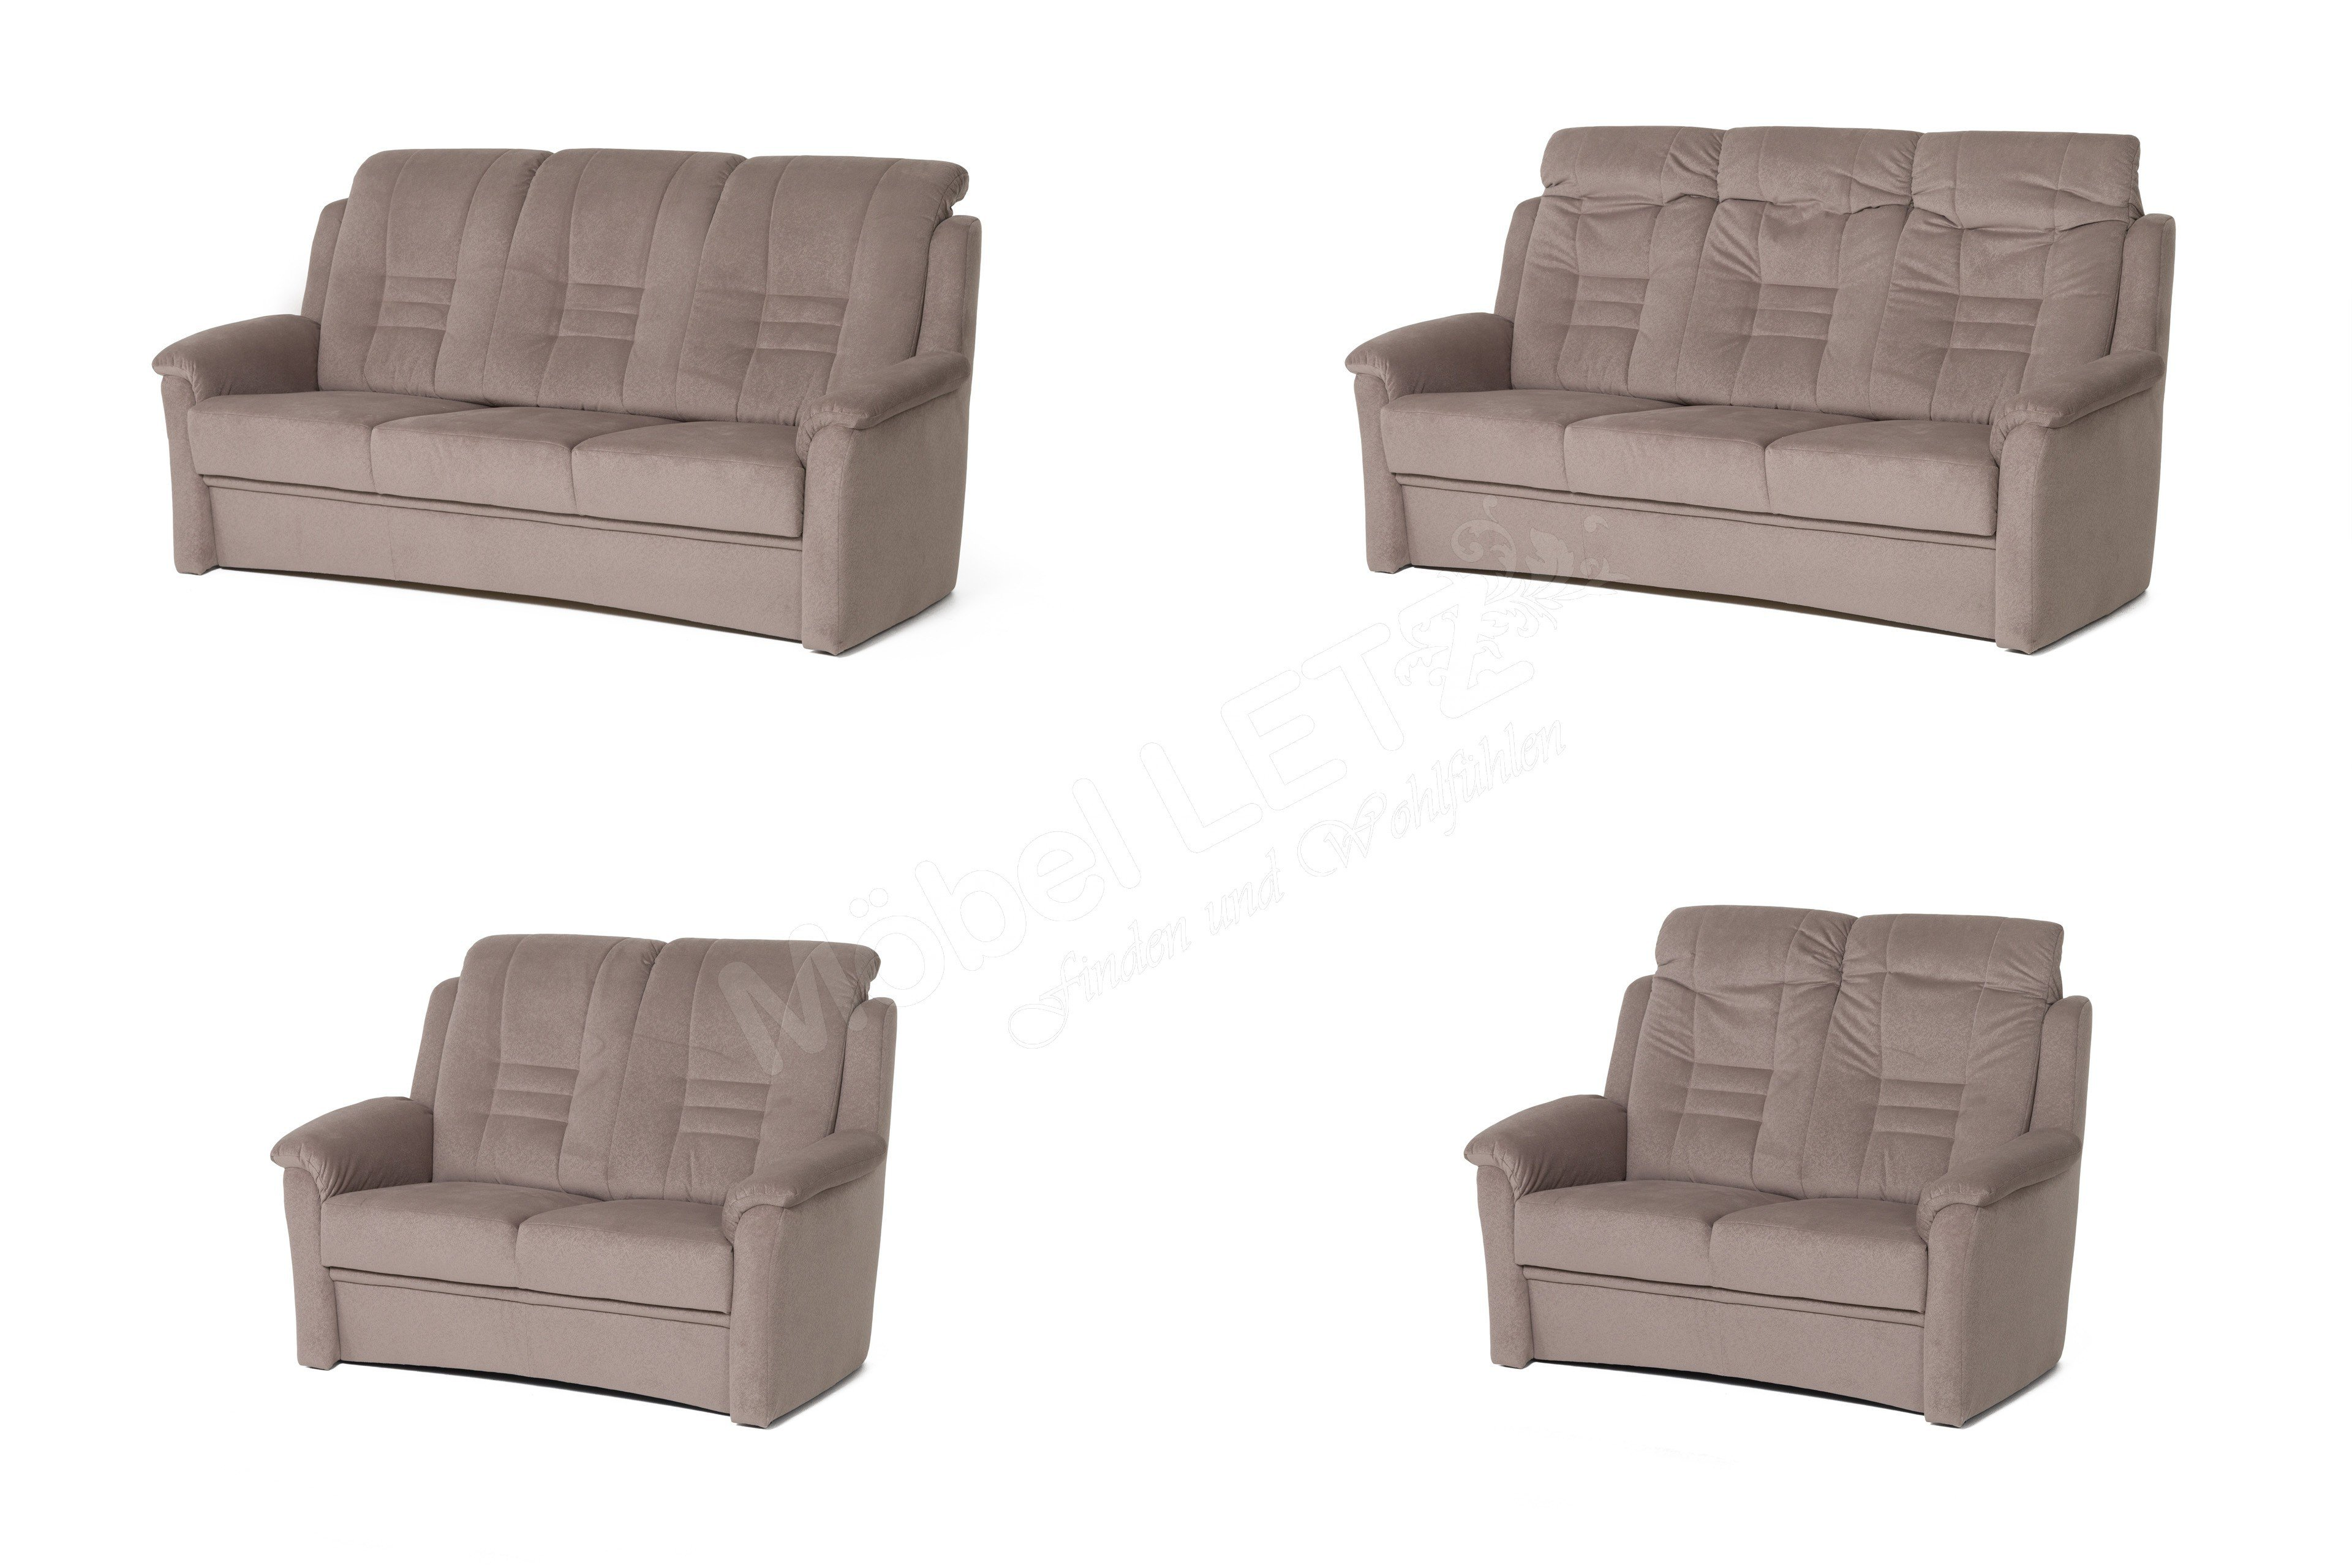 Dietsch Berlin Sofa-Garnitur in Nougat | Möbel Letz - Ihr Online-Shop